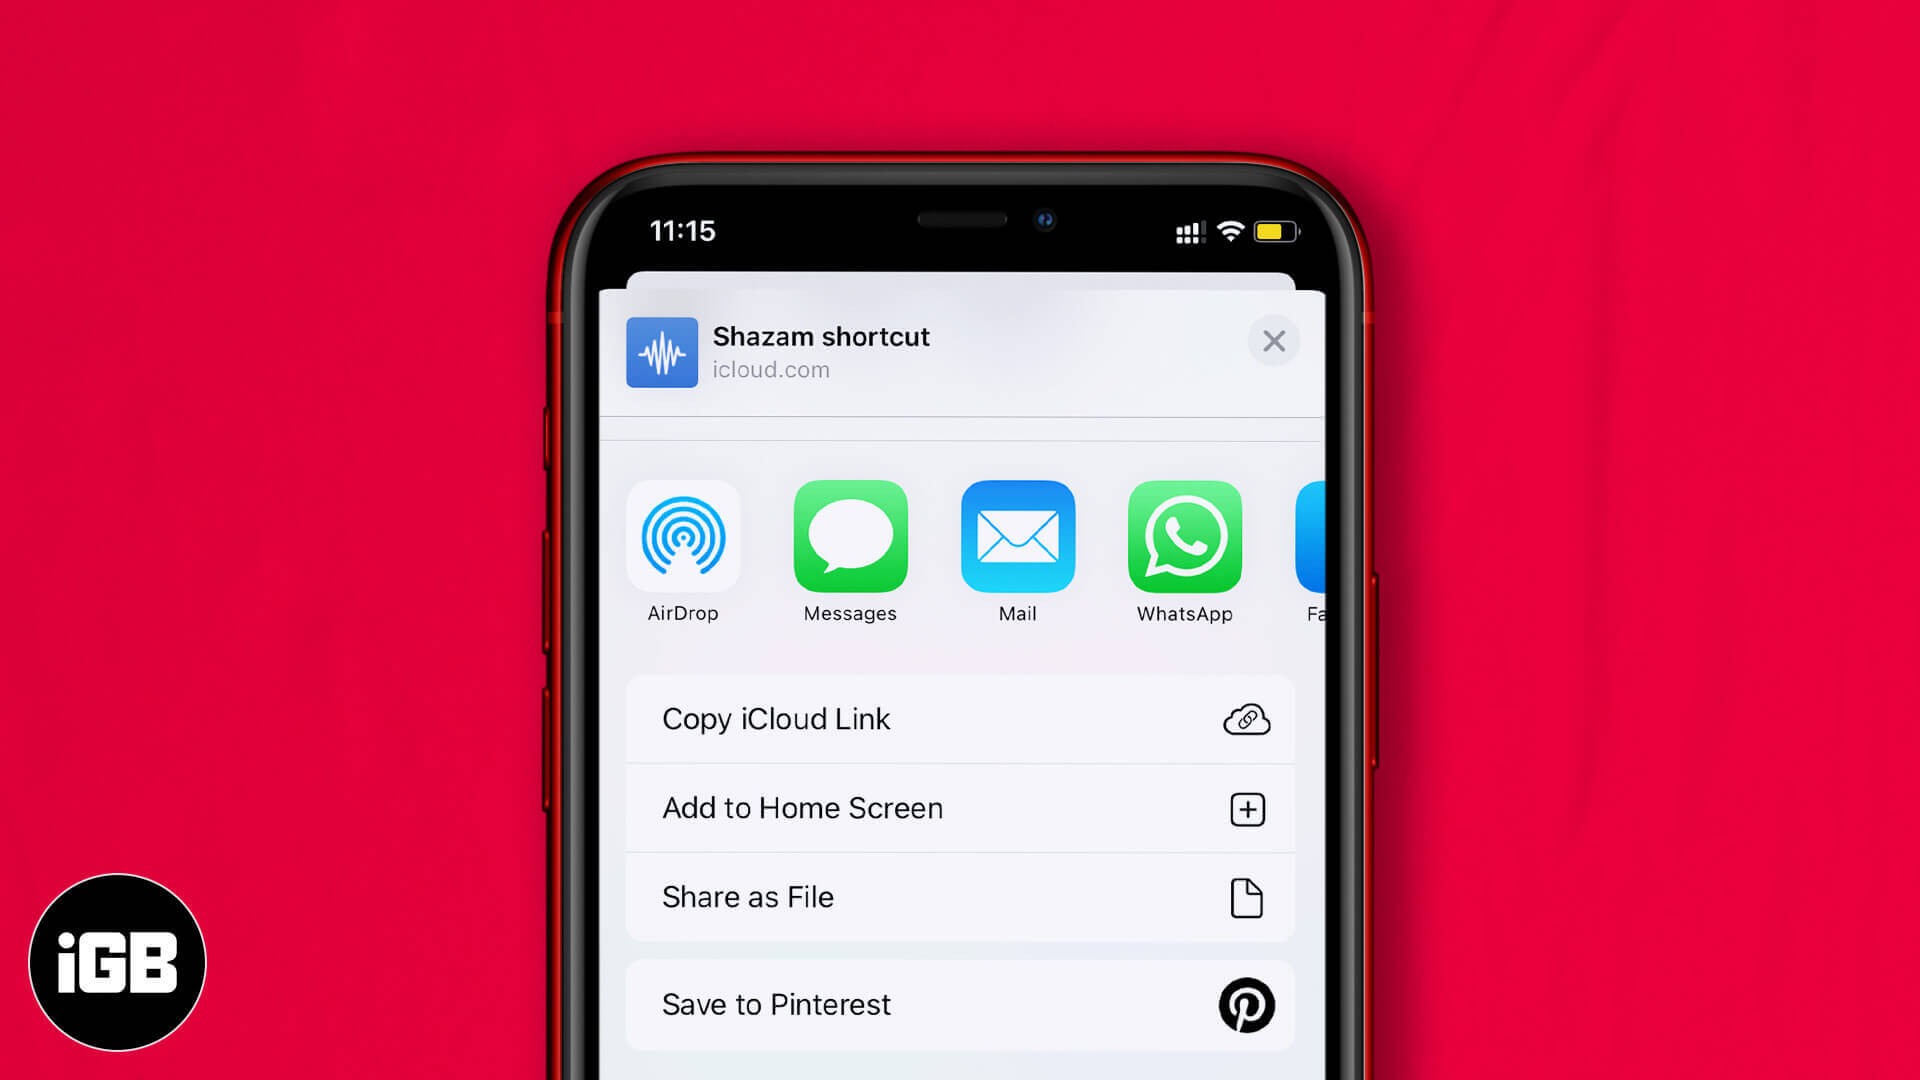 How to Share Your Shortcuts on iPhone and iPad